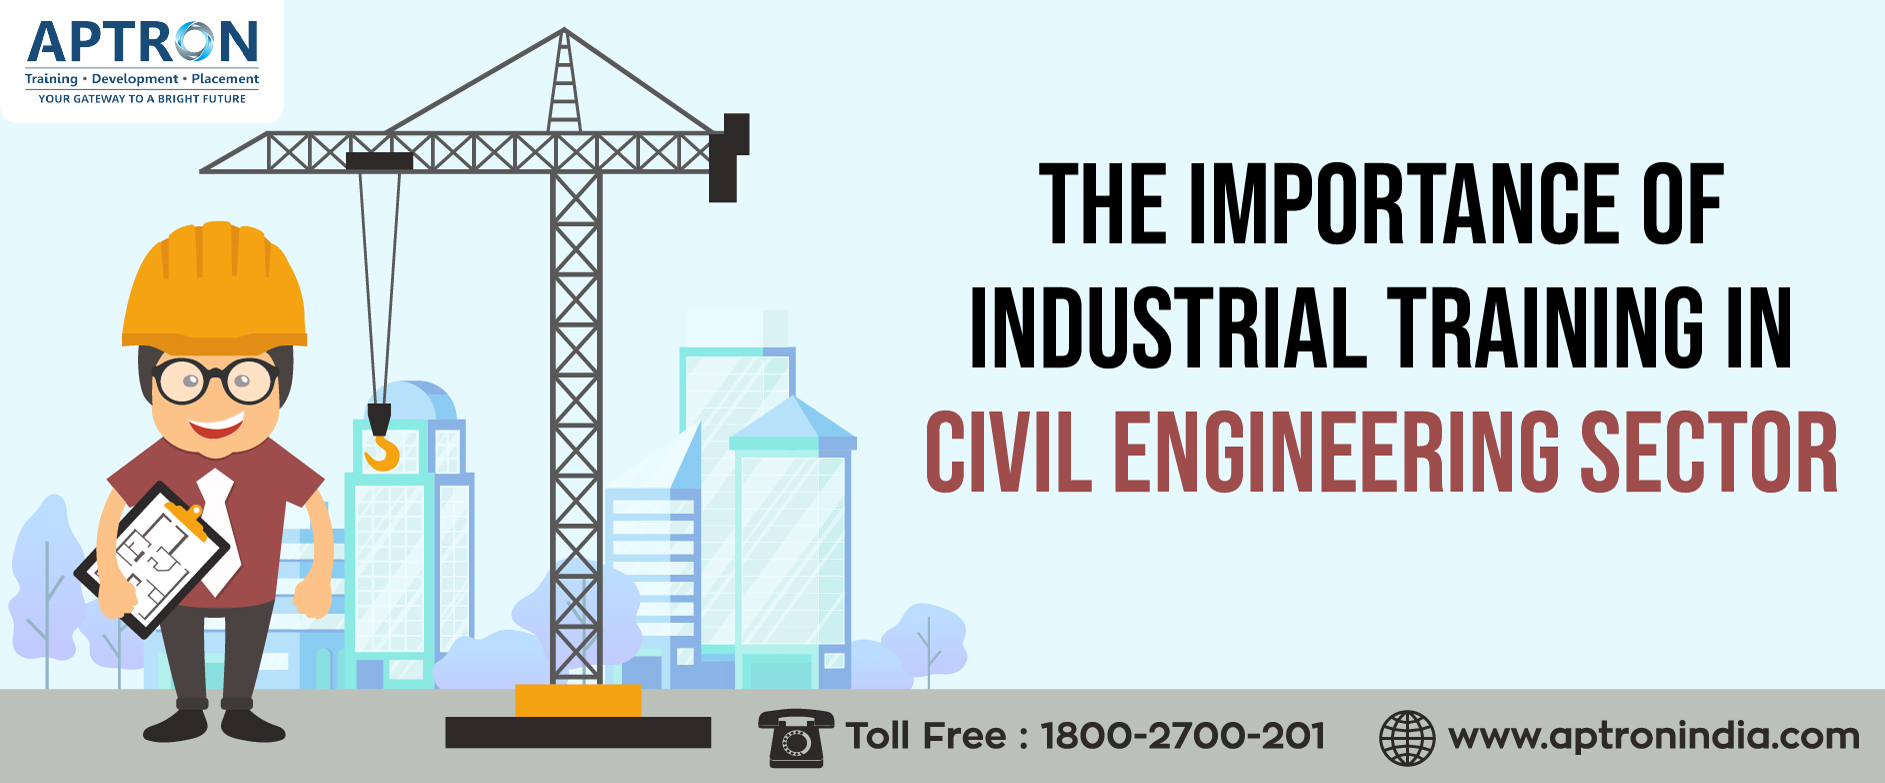 The Importance of Industrial Training in Civil Engineering Sector